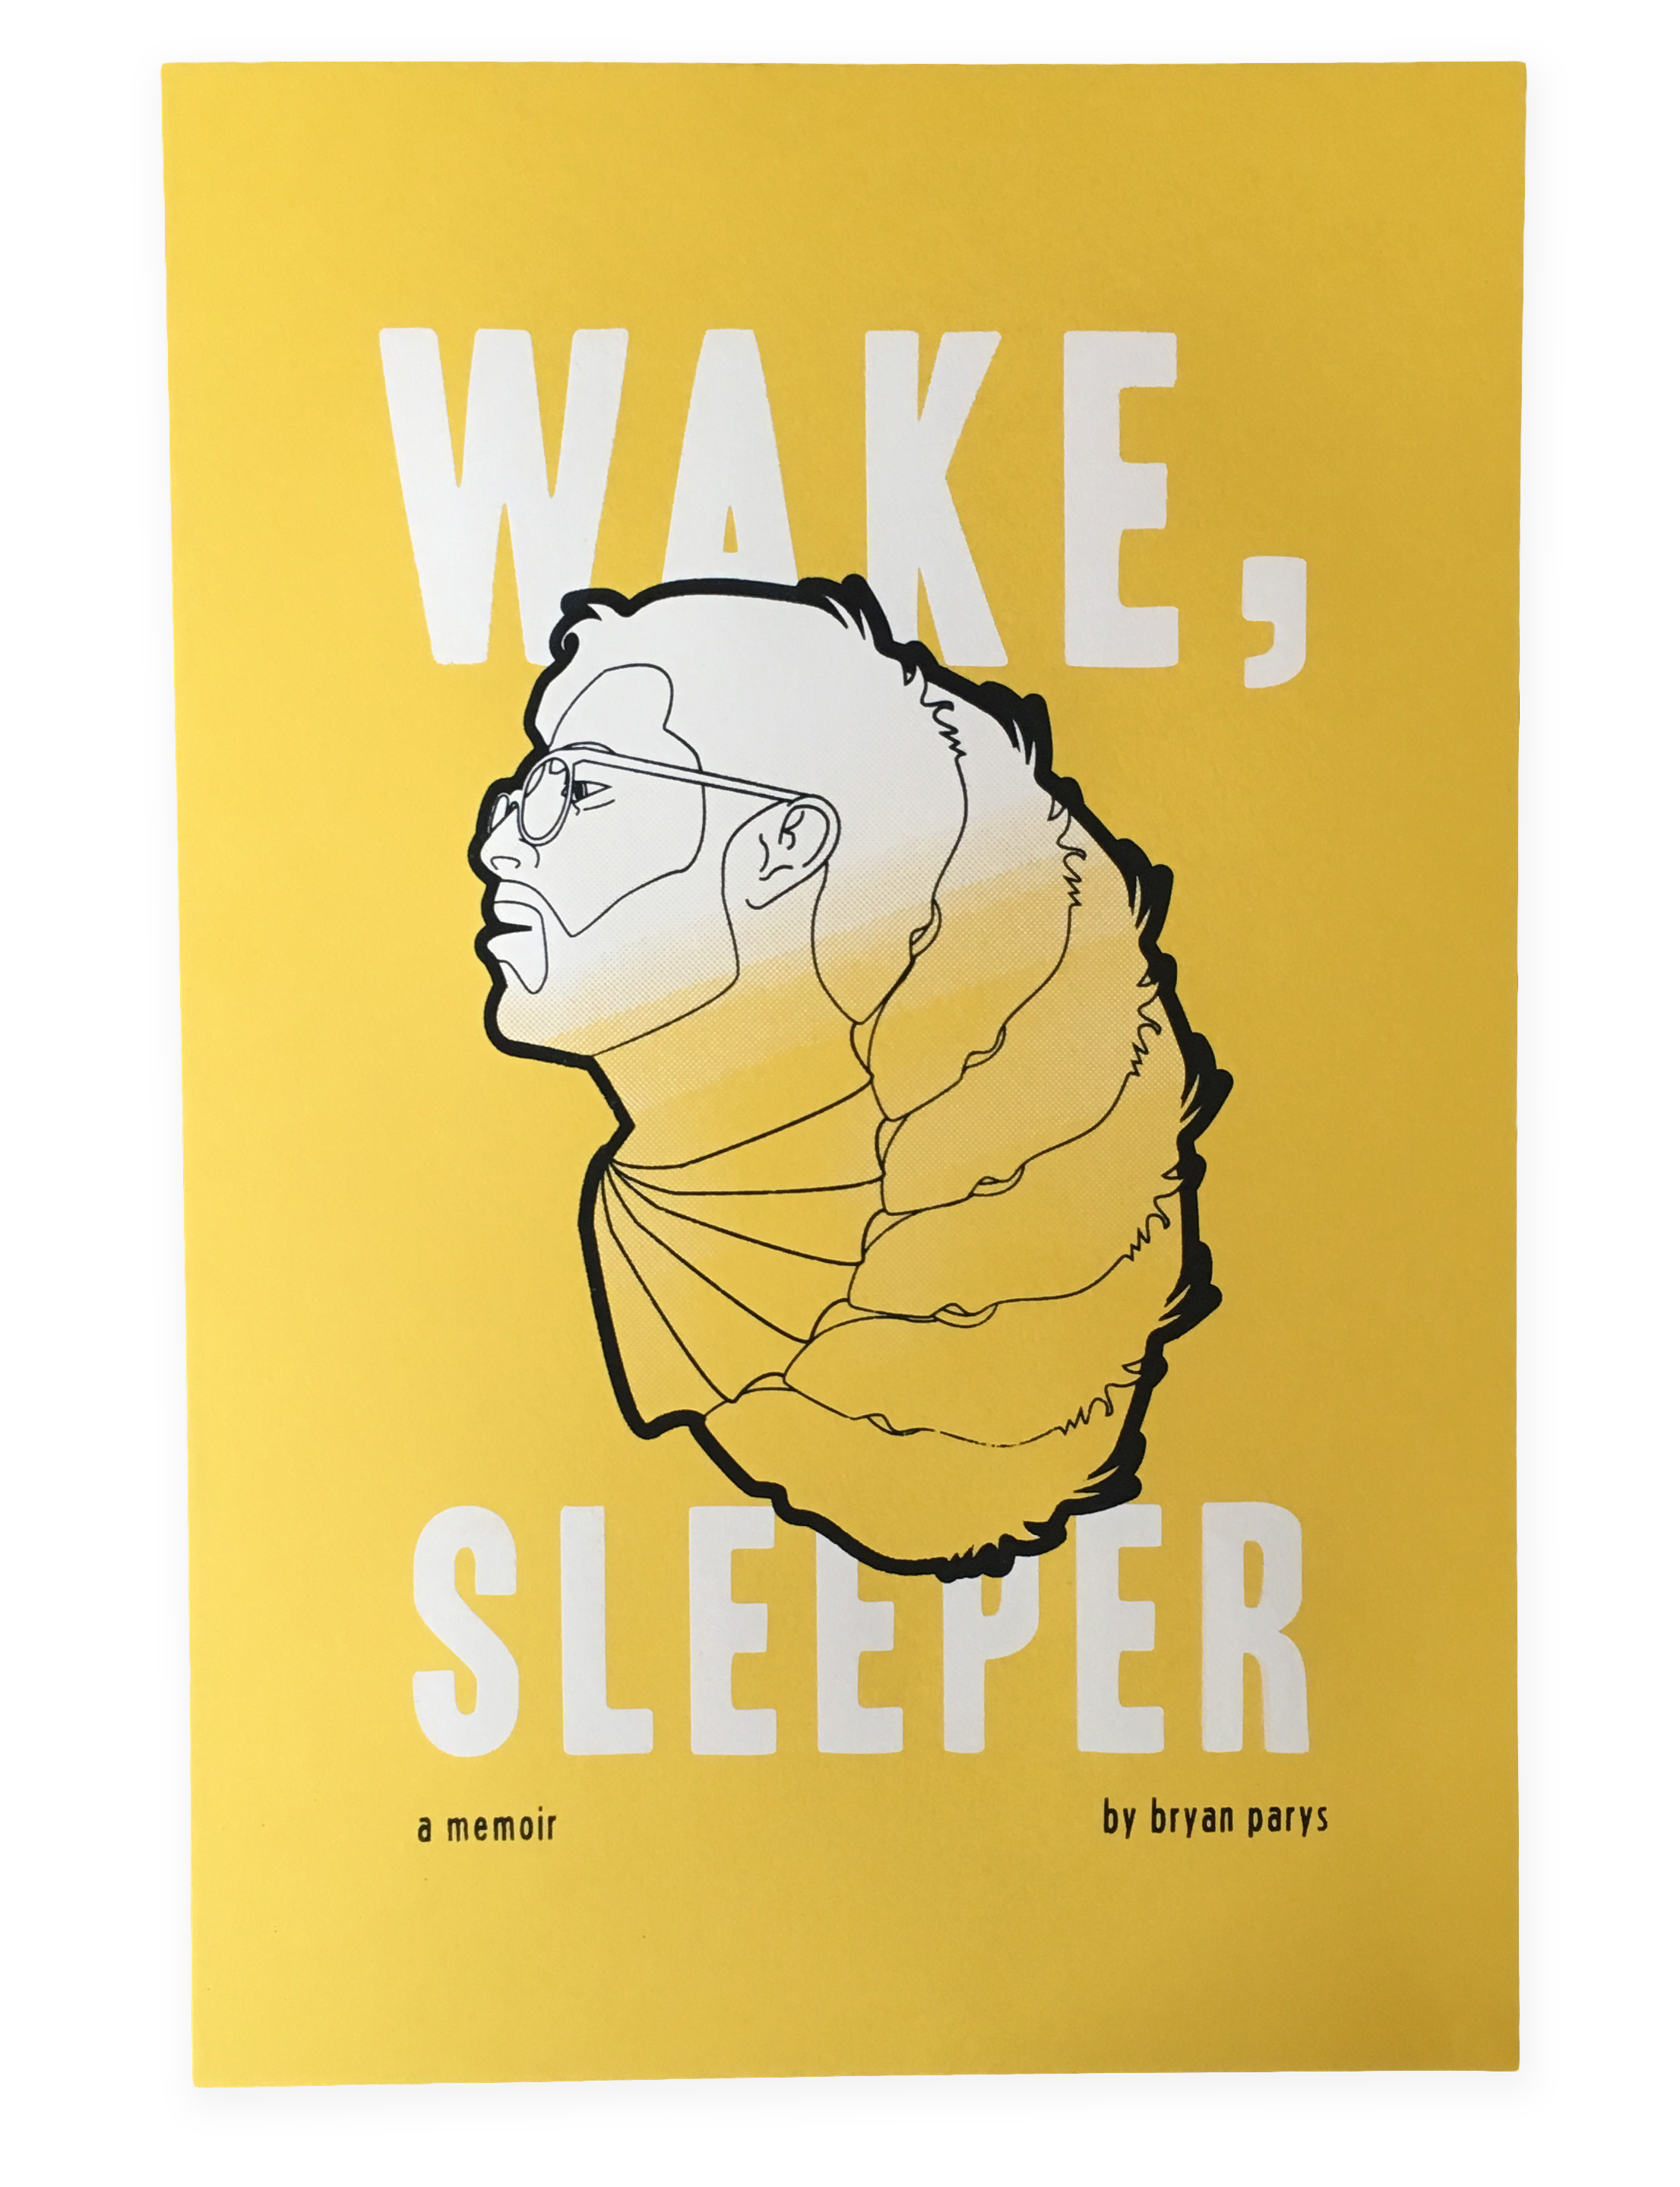 WakeSleeper-yellow-poster.png